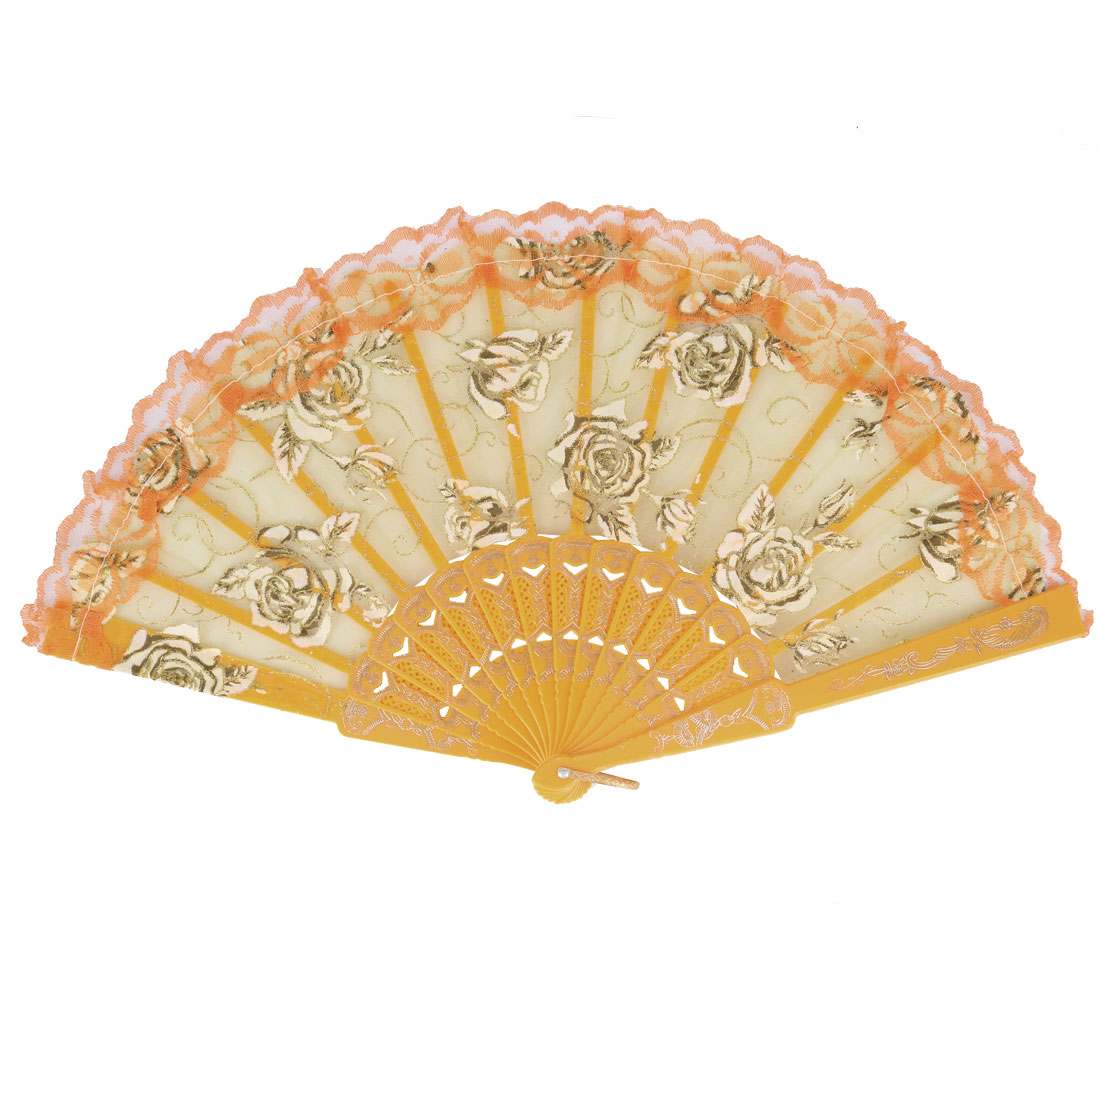 Plastic Handle Chinese Style Floral Lace Decor Dancing Folding Hand Fan Yellow Gold Tone